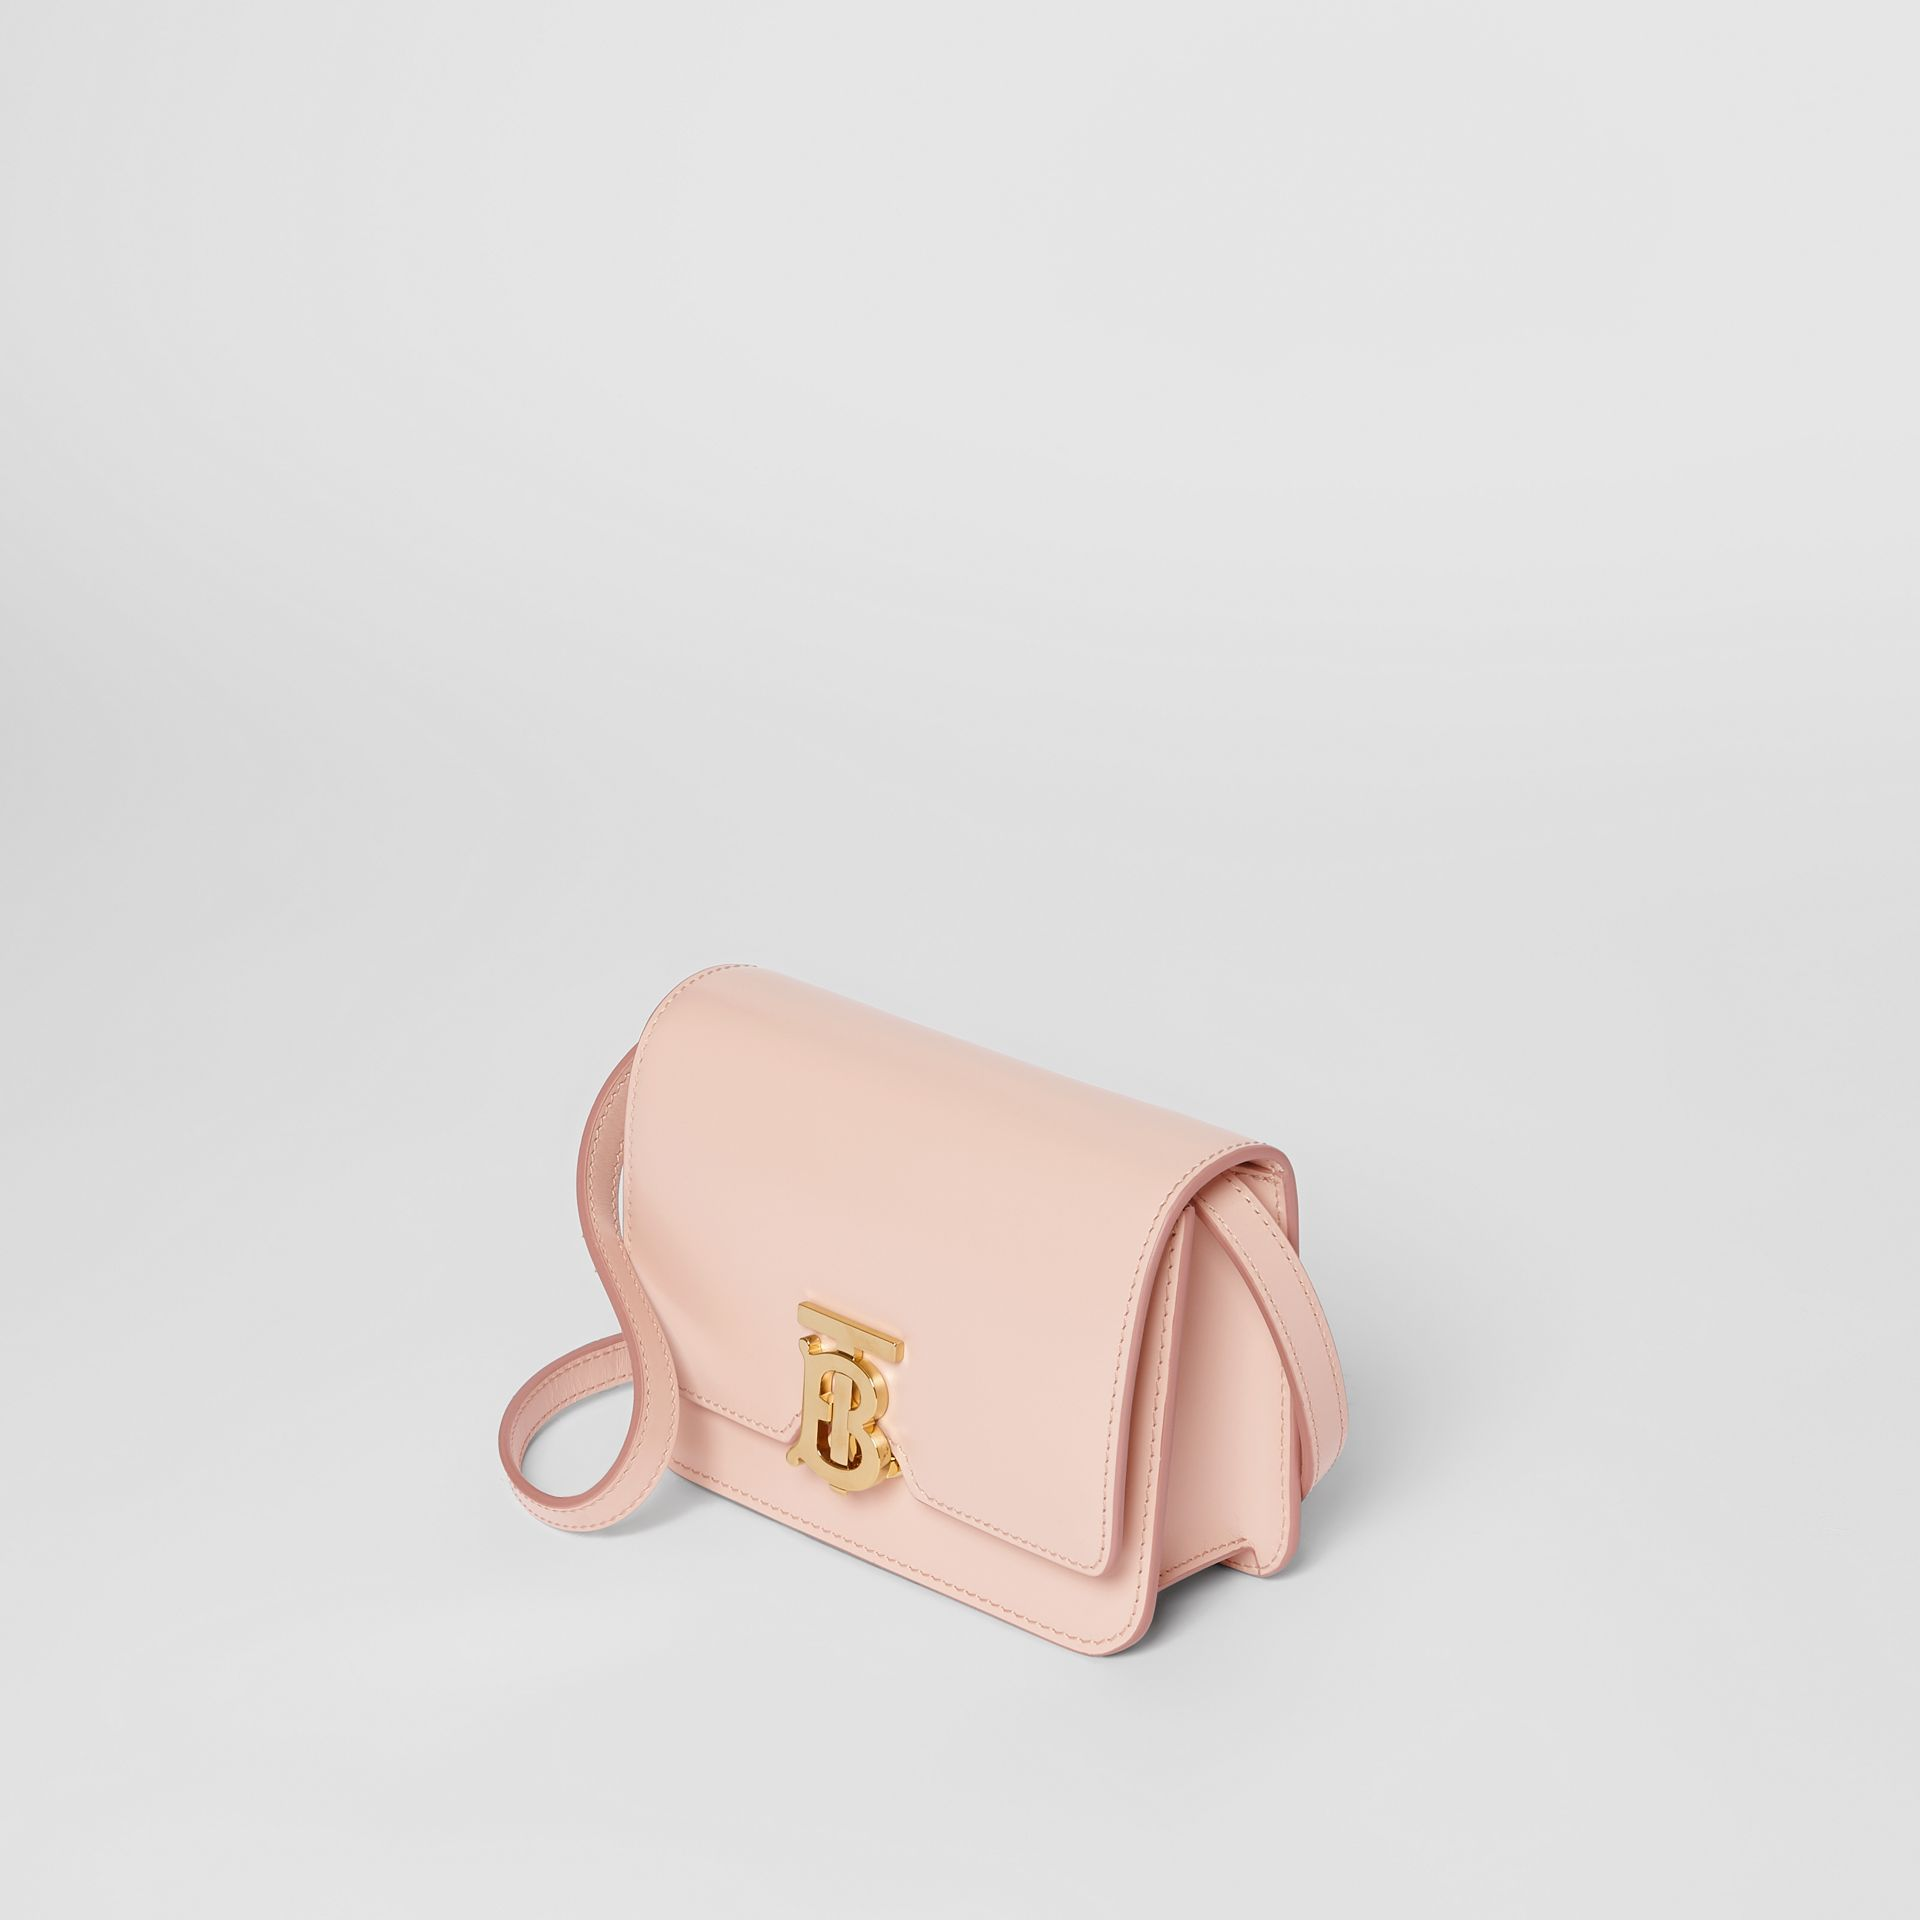 Mini Leather TB Bag in Rose Beige - Women | Burberry Canada - gallery image 3